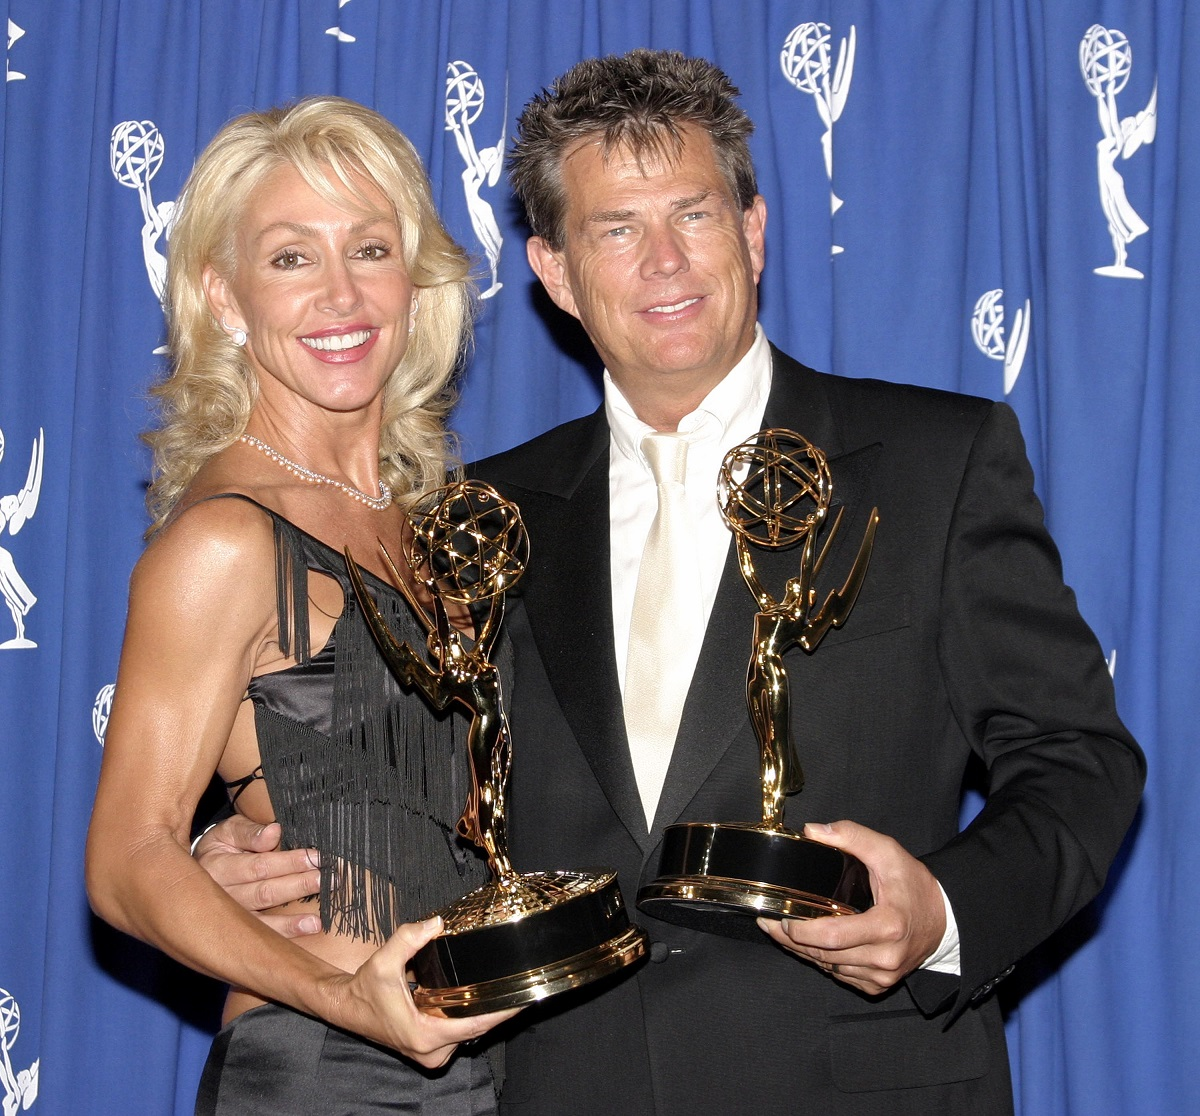 David Foster and Linda Thompson at the 55th Annual Primetime Emmy Awards